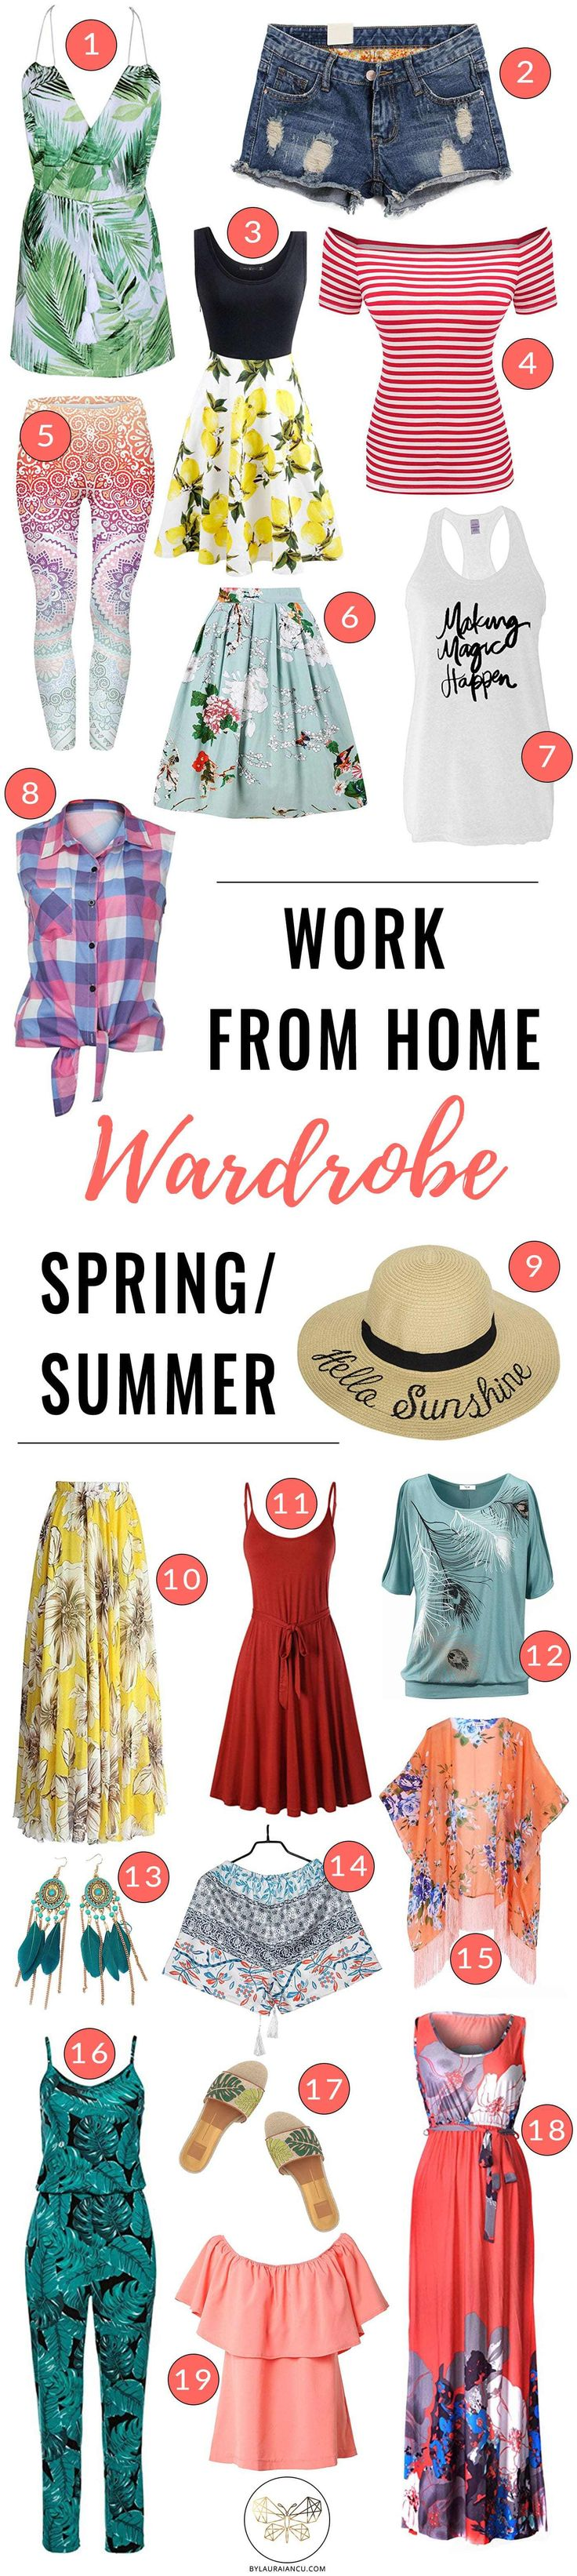 Casual work from home wardrobe ideas for warm weather (spring/summer fashion). LOVE these stylish outfit ideas. They serve as great inspiration for what to wear in my home office. Great tips for work from home women, bloggers, and stay at home moms.